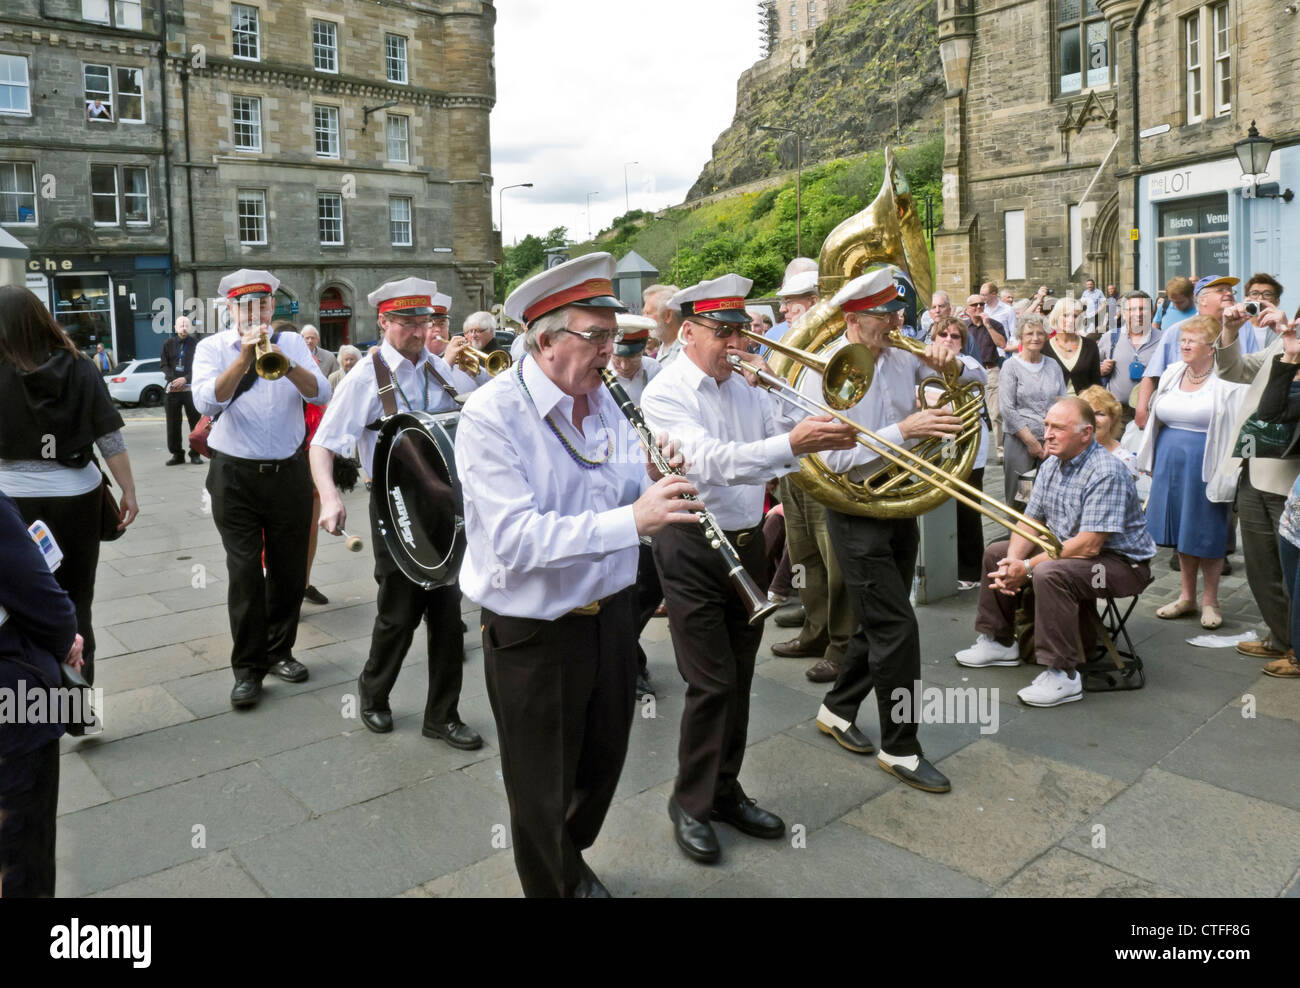 The Criterion Brass band plays in the Grassmarket at the opening of the Edinburgh Jazz and Blues Festival in Edinburgh - Stock Image